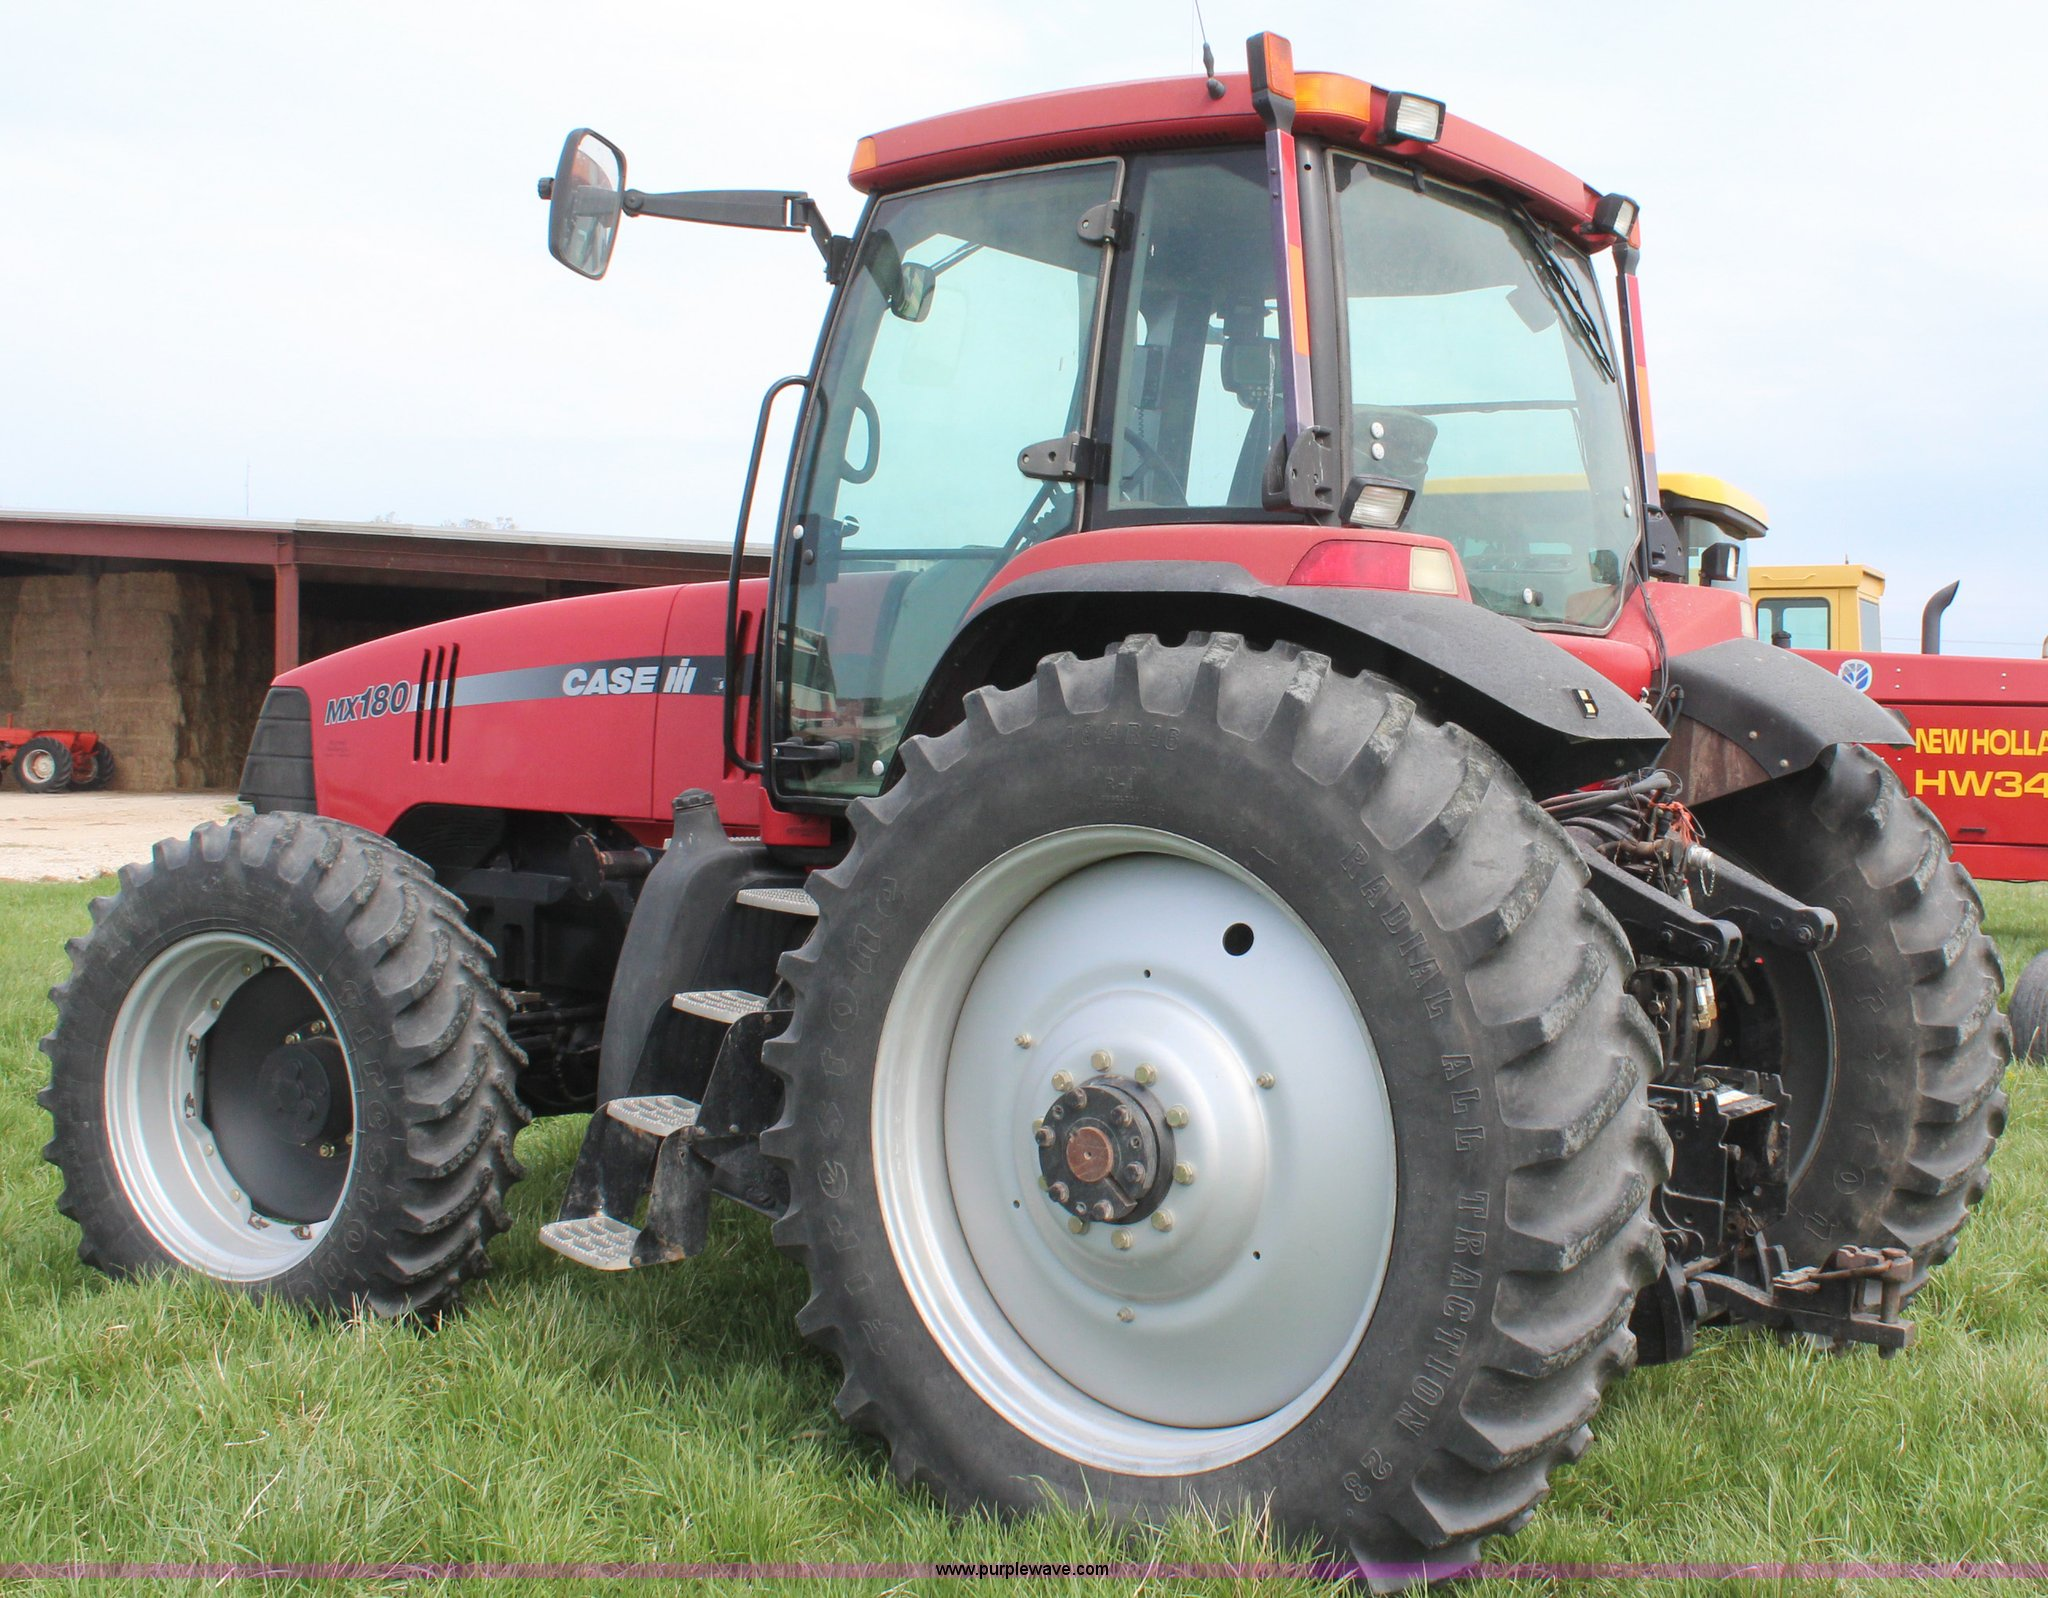 ... Case IH MX180 MFWD tractor Full size in new window ...